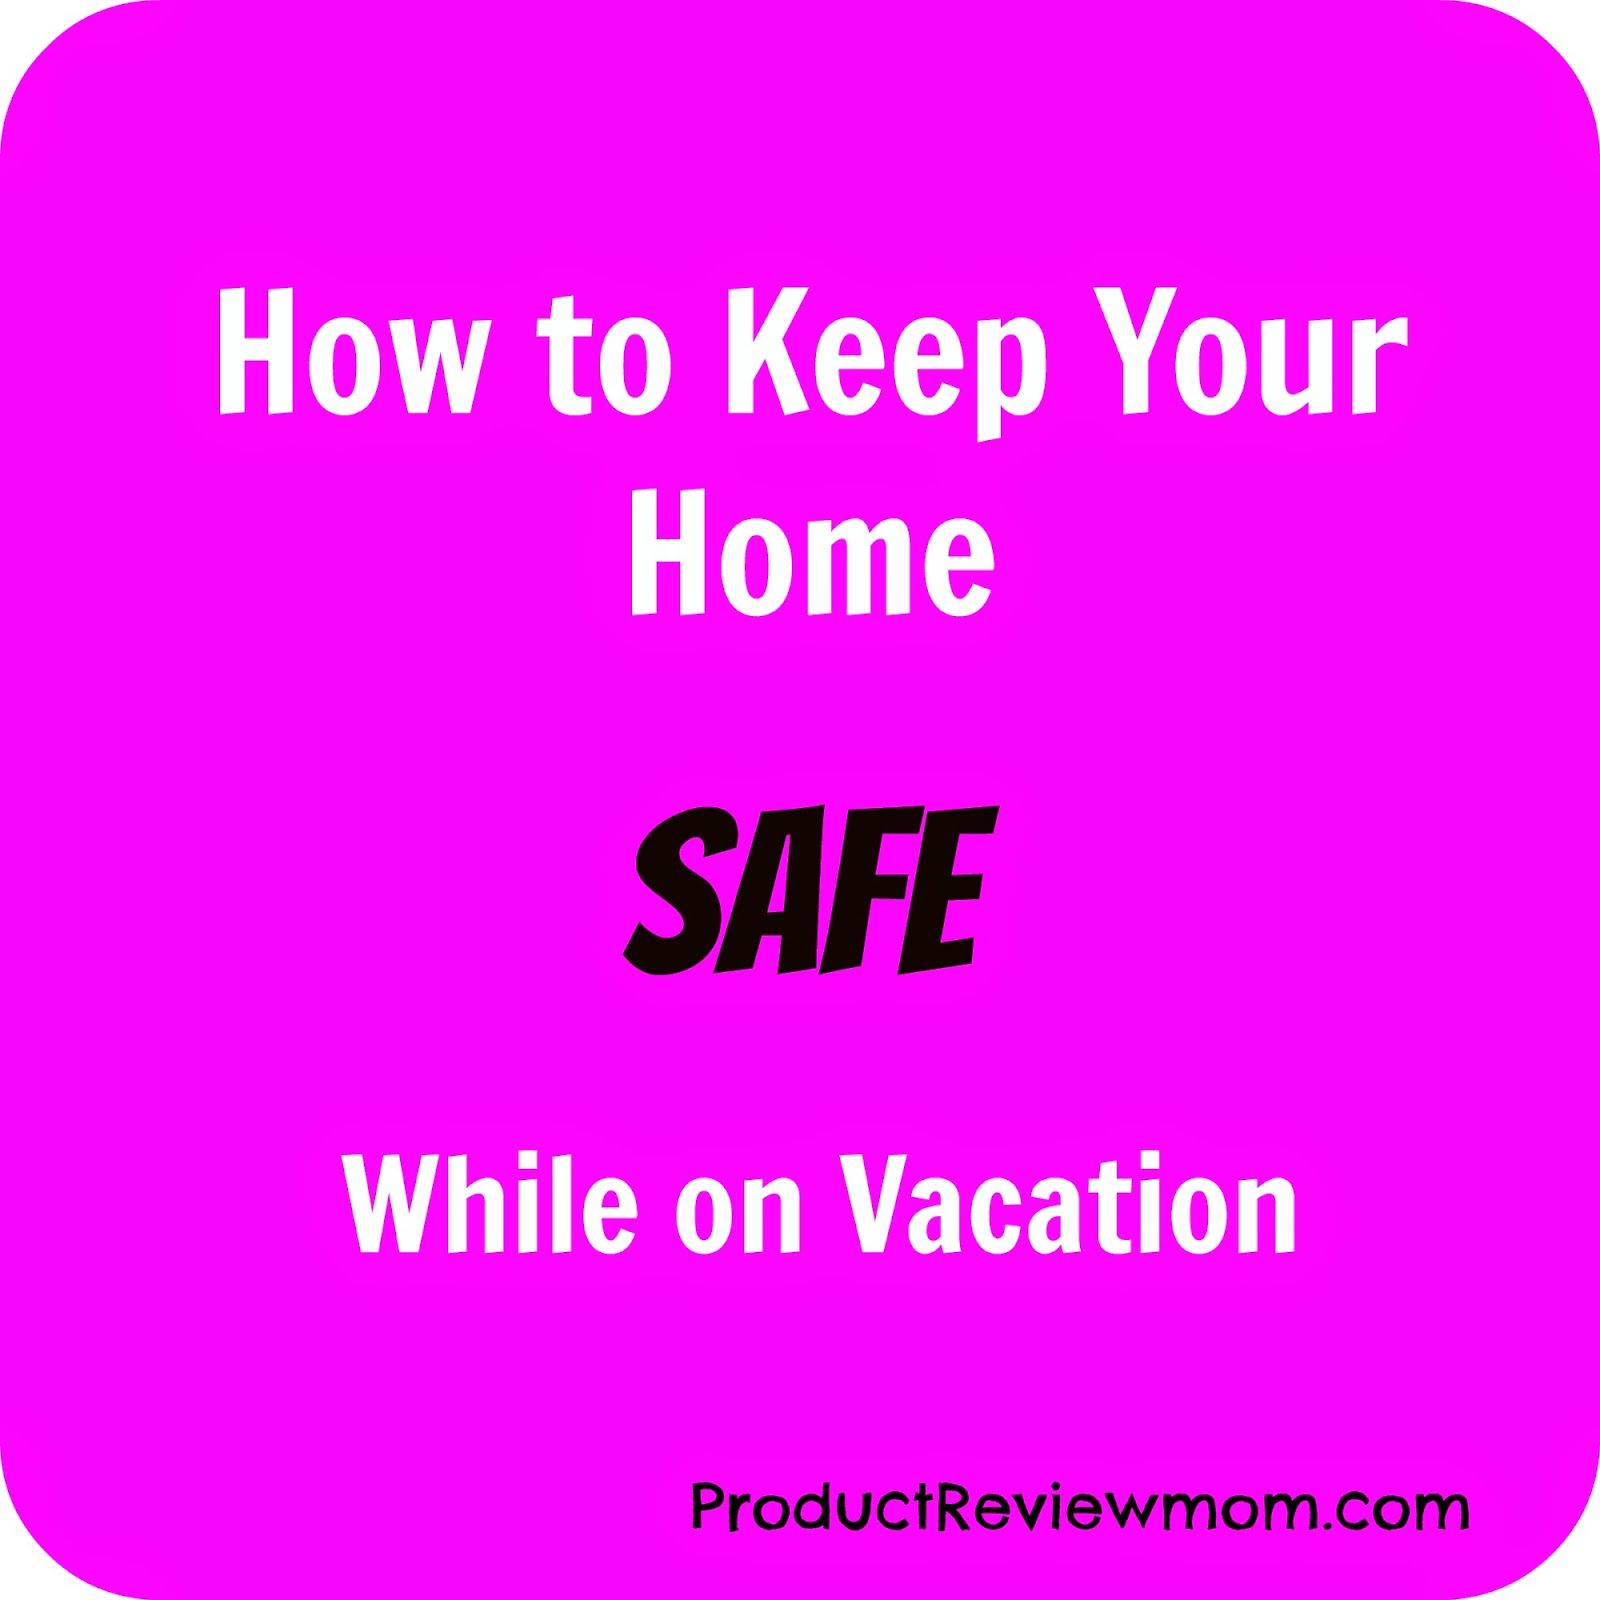 How to Keep Your Home Safe While on Vacation | Home safes ...